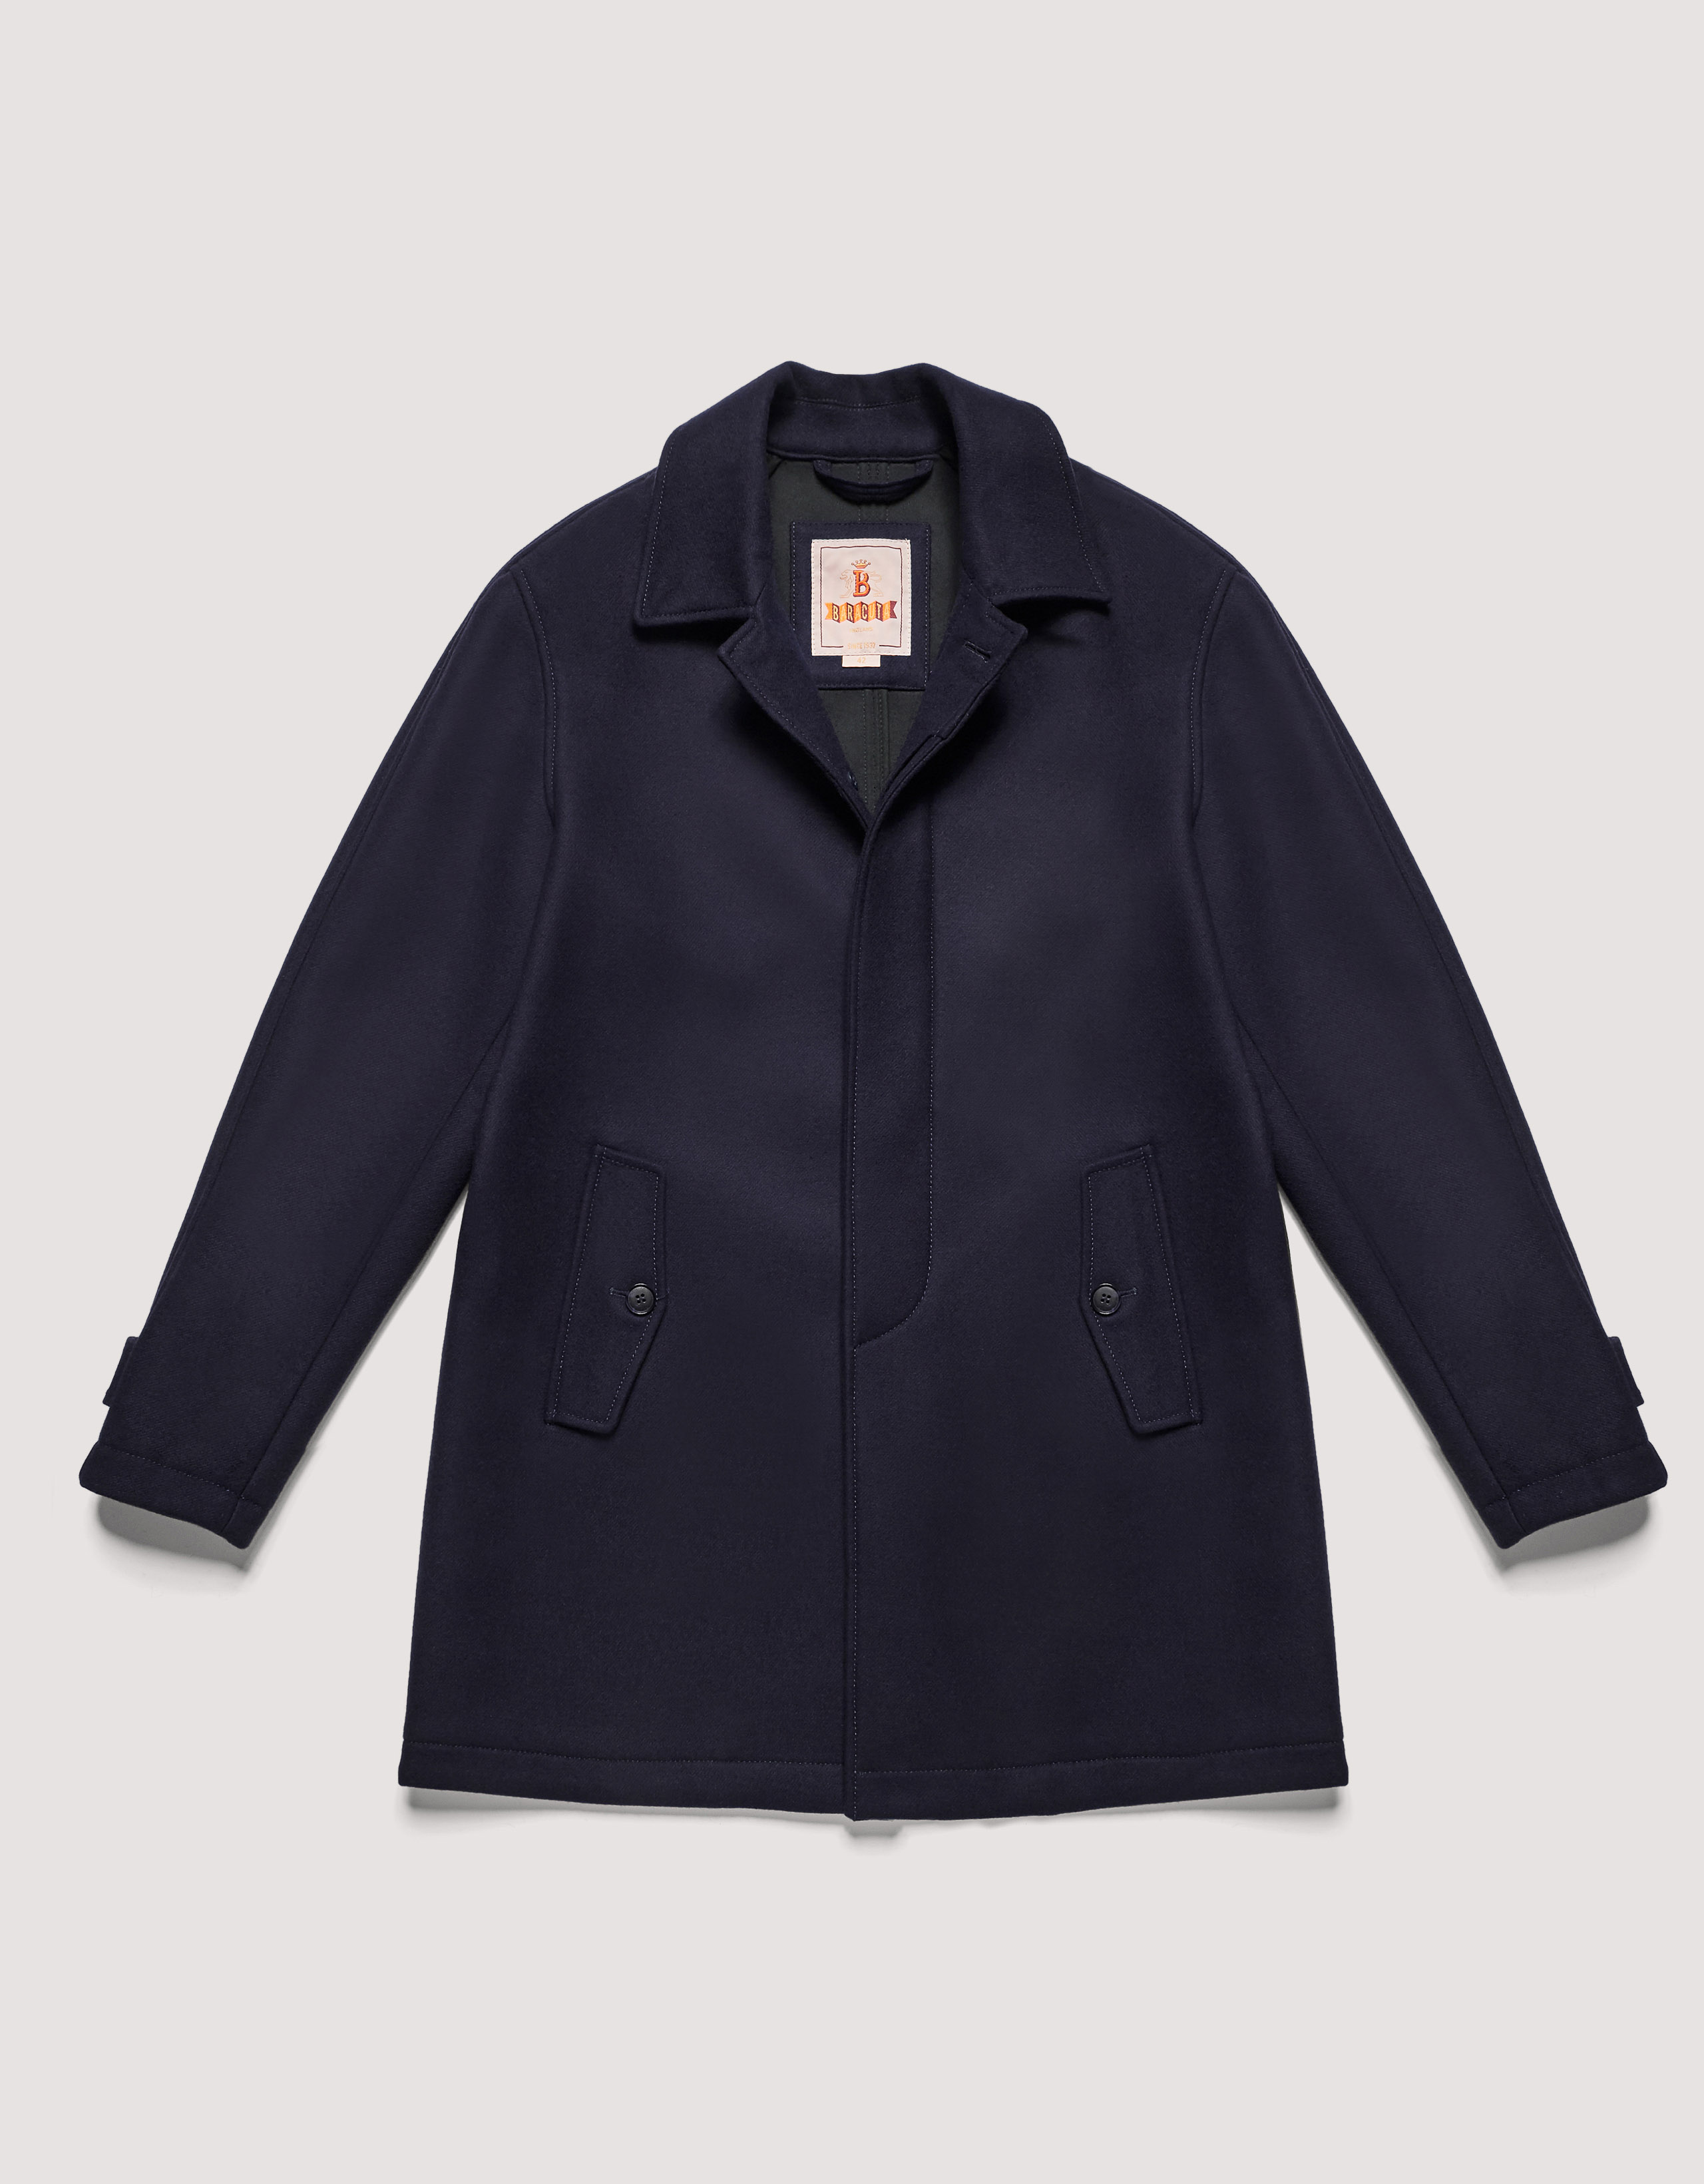 BARACUTA G10 Archive Fit Felted Neo Navy 5